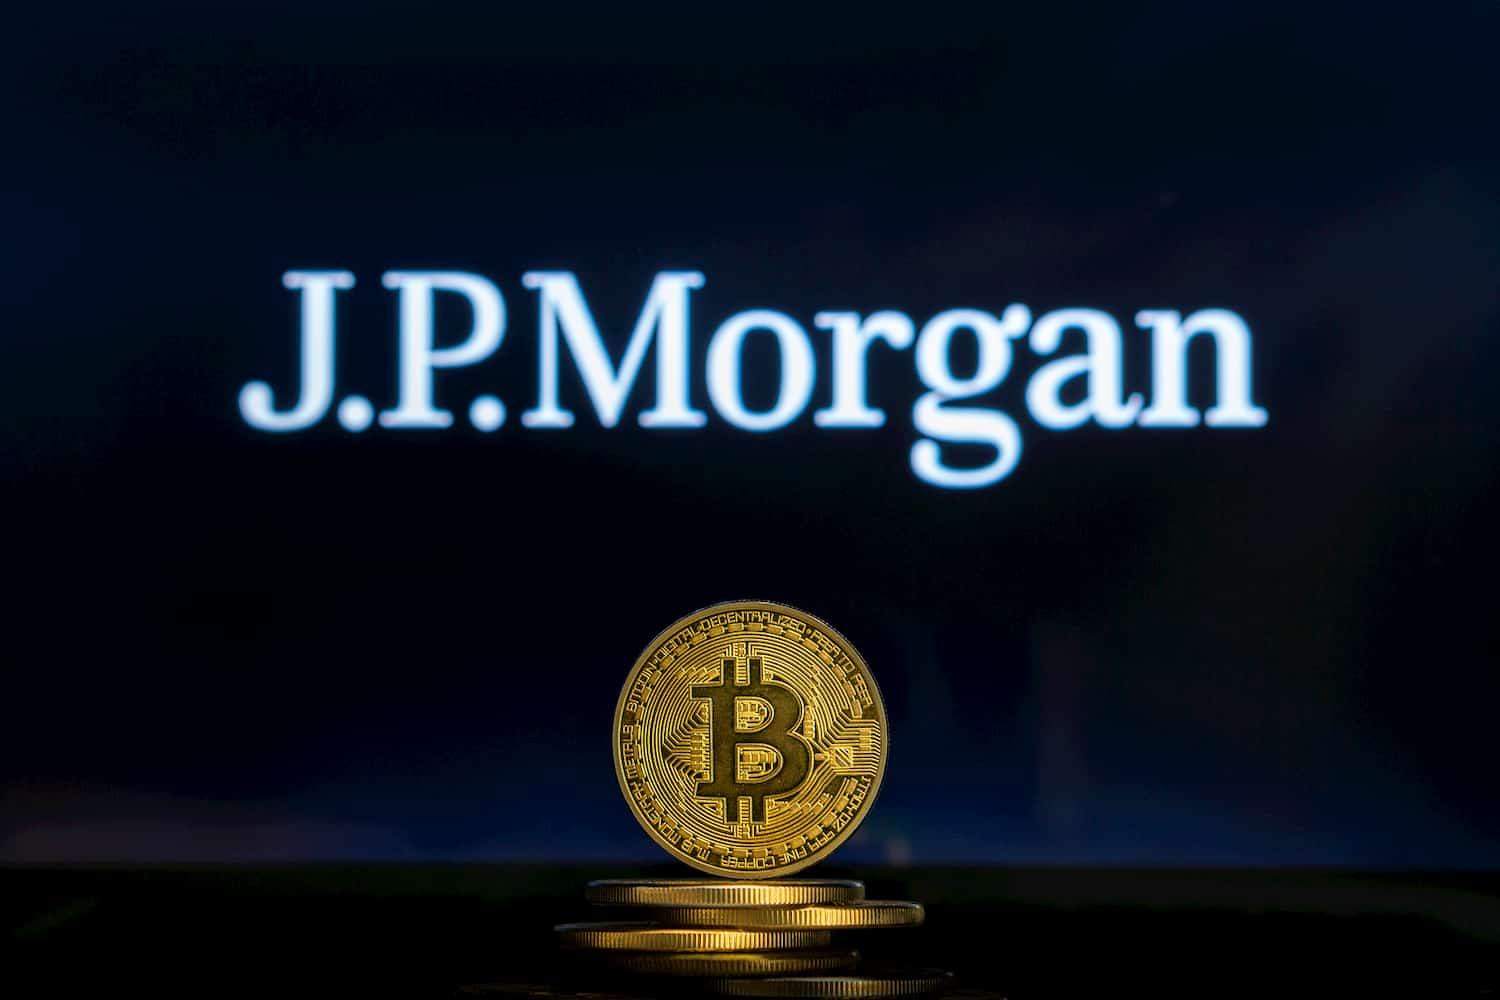 Bitcoin price could rise to $146,000 according to JPMorgan Chase bank